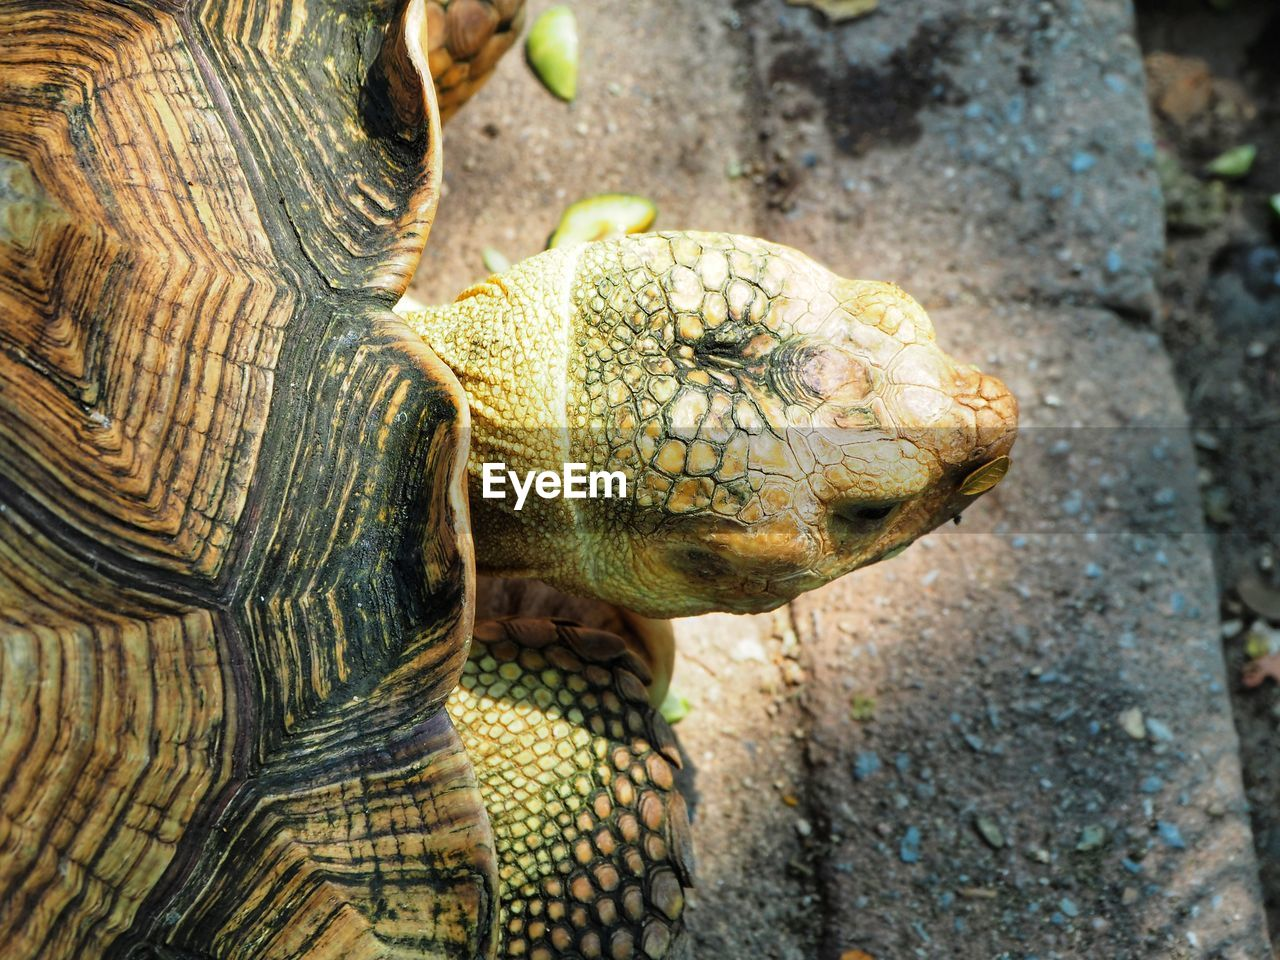 animal themes, animal, reptile, animal wildlife, one animal, animals in the wild, turtle, vertebrate, close-up, tortoise, animal body part, animal head, no people, nature, day, animal shell, shell, outdoors, focus on foreground, zoo, tortoise shell, animal scale